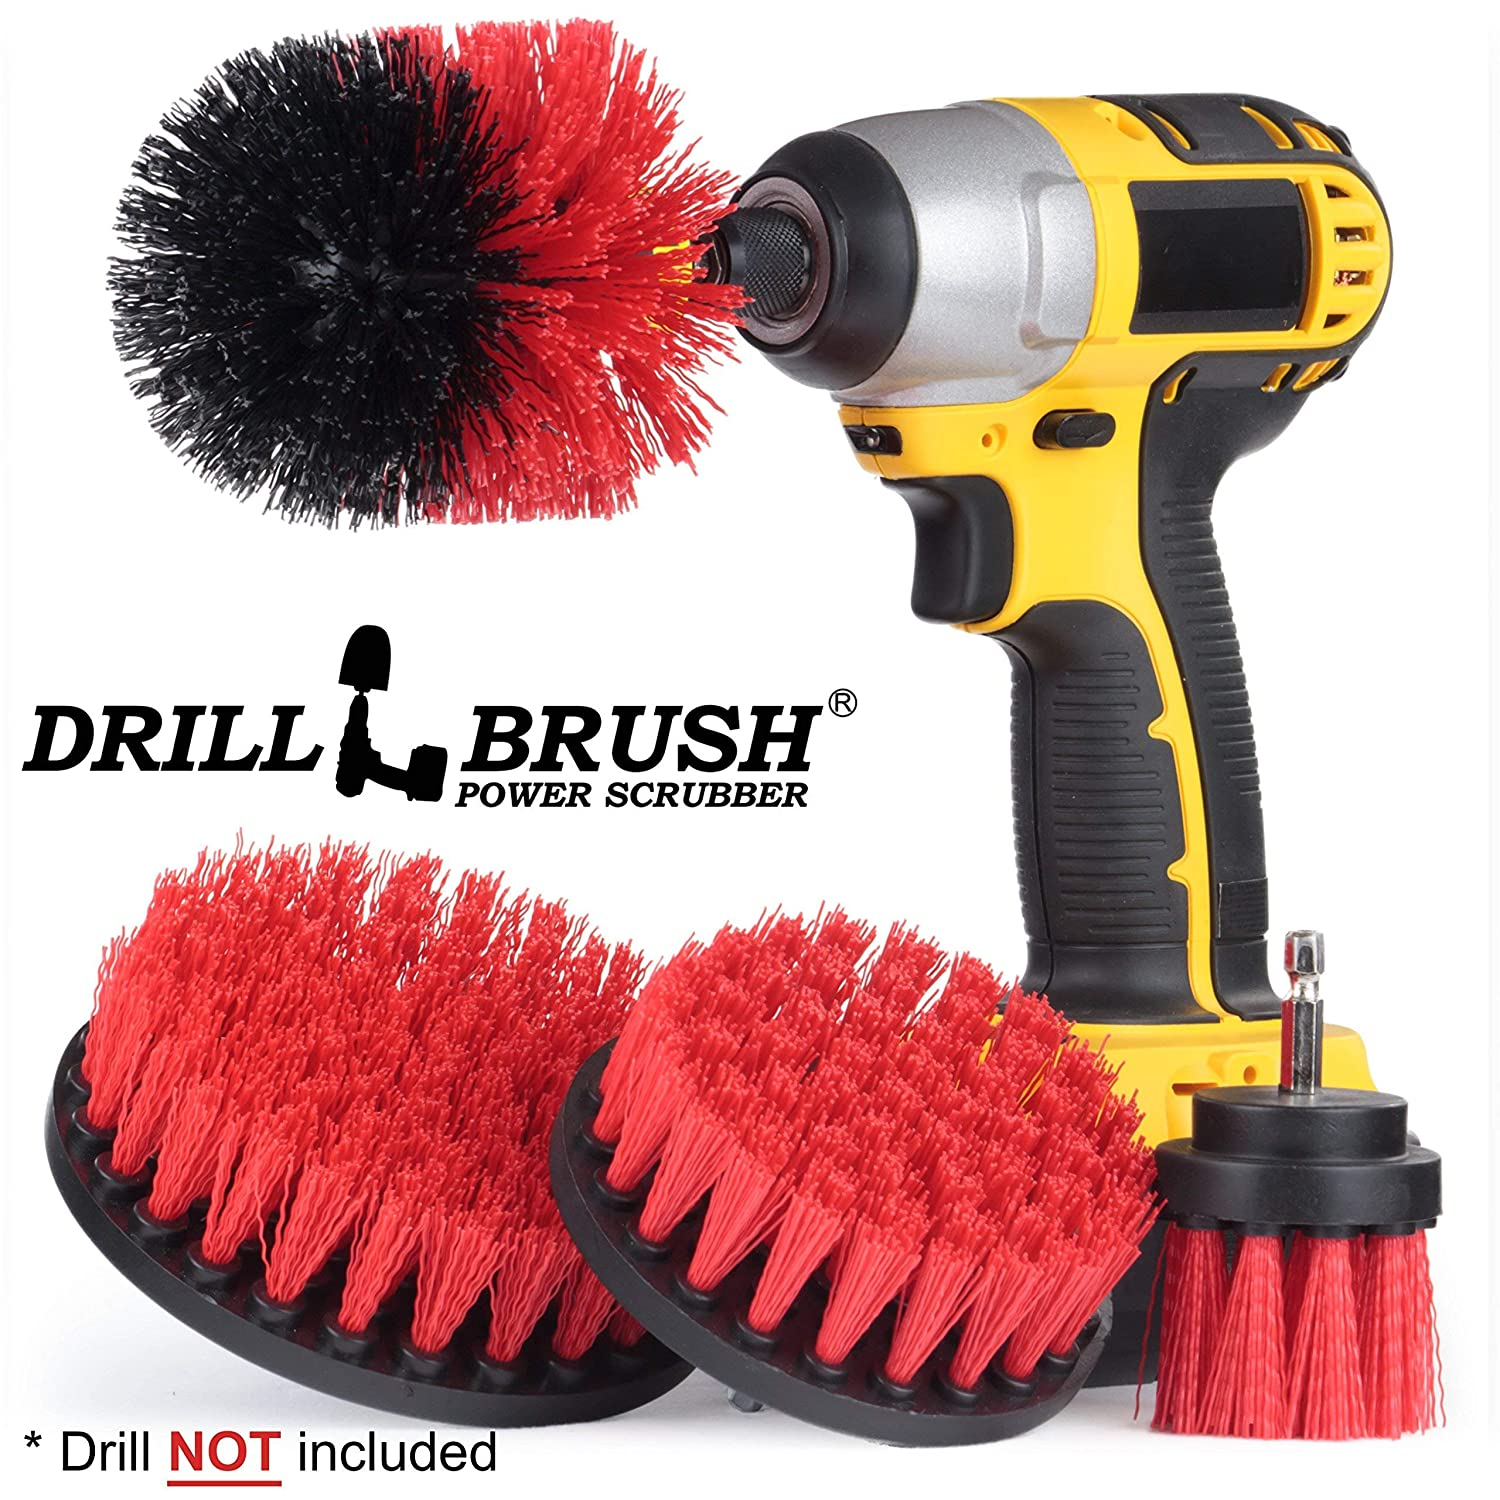 Drillbrush 4 Piece Scrub Brush Drill Attachment Kit - Drill Powered Cleaning Brush Attachments - Time Saving Cleaning Kit - Great for Cleaning Pool Tile, Flooring, Brick, Ceramic, Marble, and Grout S-W2-Y4O-R5-QC-DB